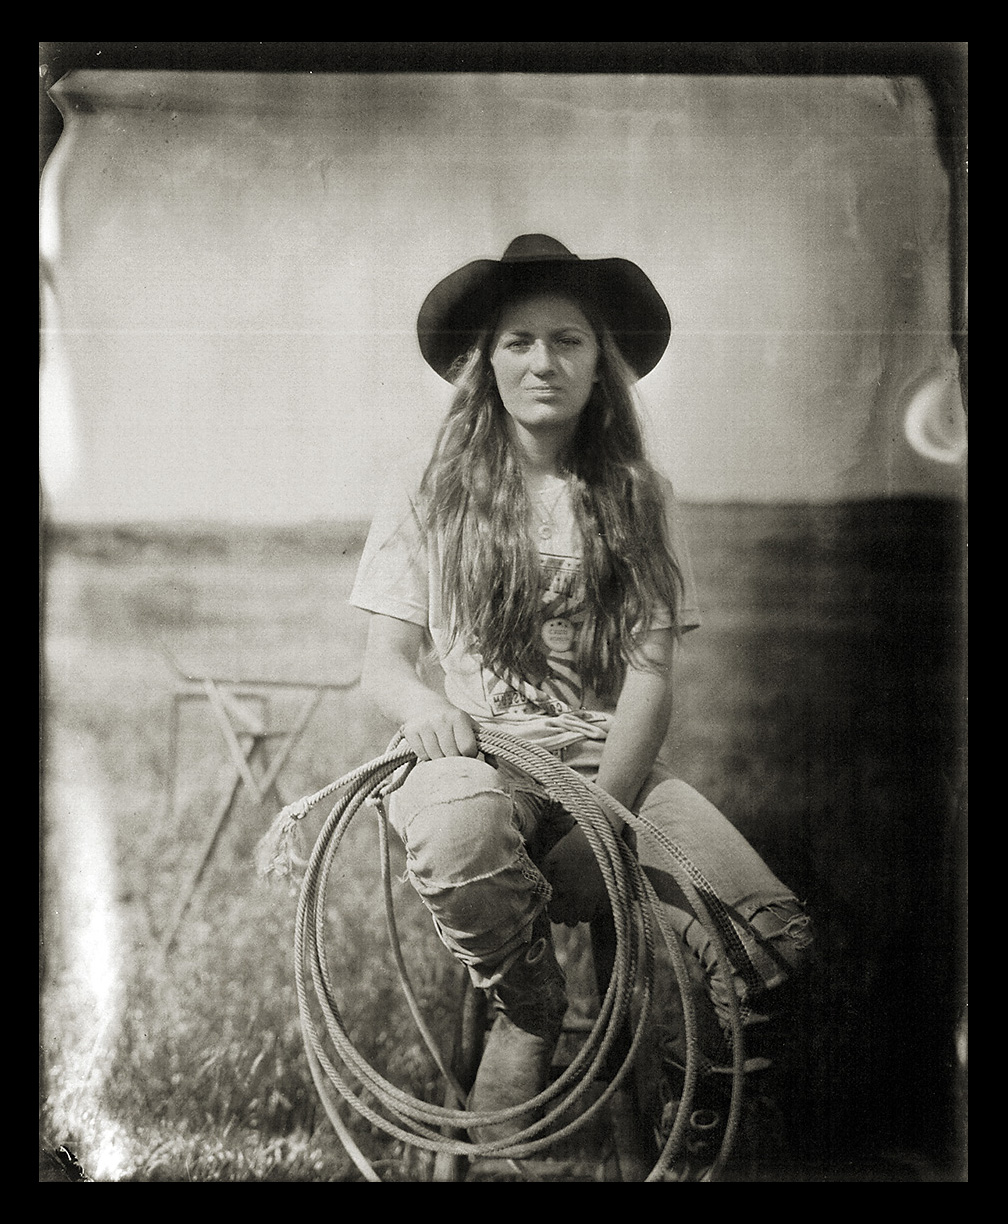 Jaden Stauffer    Wet Plate Tin Type on Aluminum   Jaden Stauffer is the youngest family member still living and working on the Zerbst Ranch in Niobrara County Wyoming, just outside of the Black Hills. Jaden is a 5th generation rancher, fossil collector and an avid photographer. The ranch she calls home has produced some of the world's most incredible fossils of Tyrannosaurus rex, Edmontosaurus, and Triceratops. Since their discovery in the early 1900's, the much celebrated 'mummified' dinosaurs from this ranch have been important elements on exhibit in New York and Seckenberg, Germany.  She is photographed here on her ranch with her lariat and roping steer.